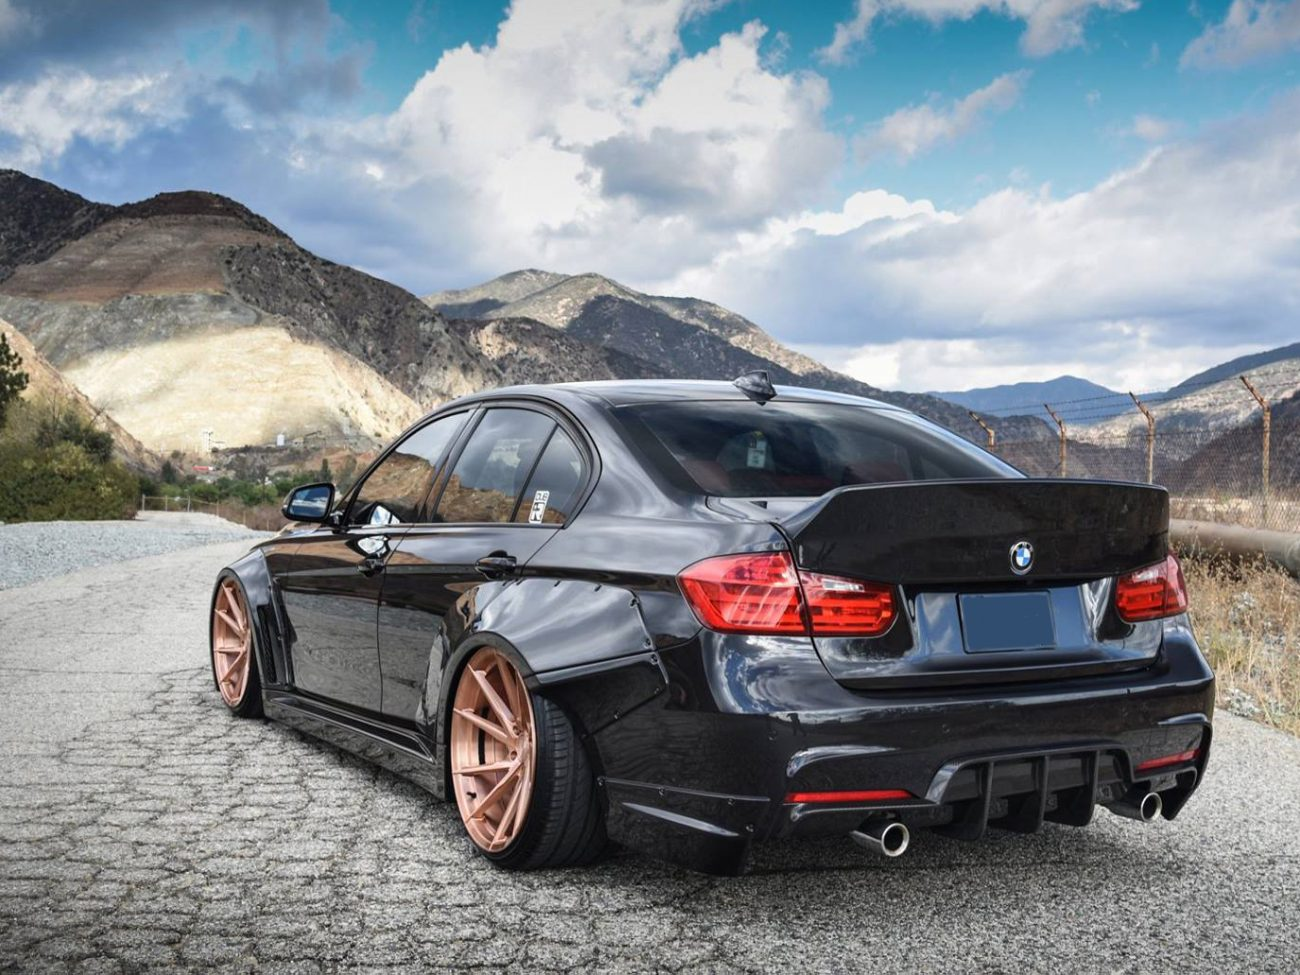 BMW 3-series F30 Ducktail Spoiler by Clinched Flares